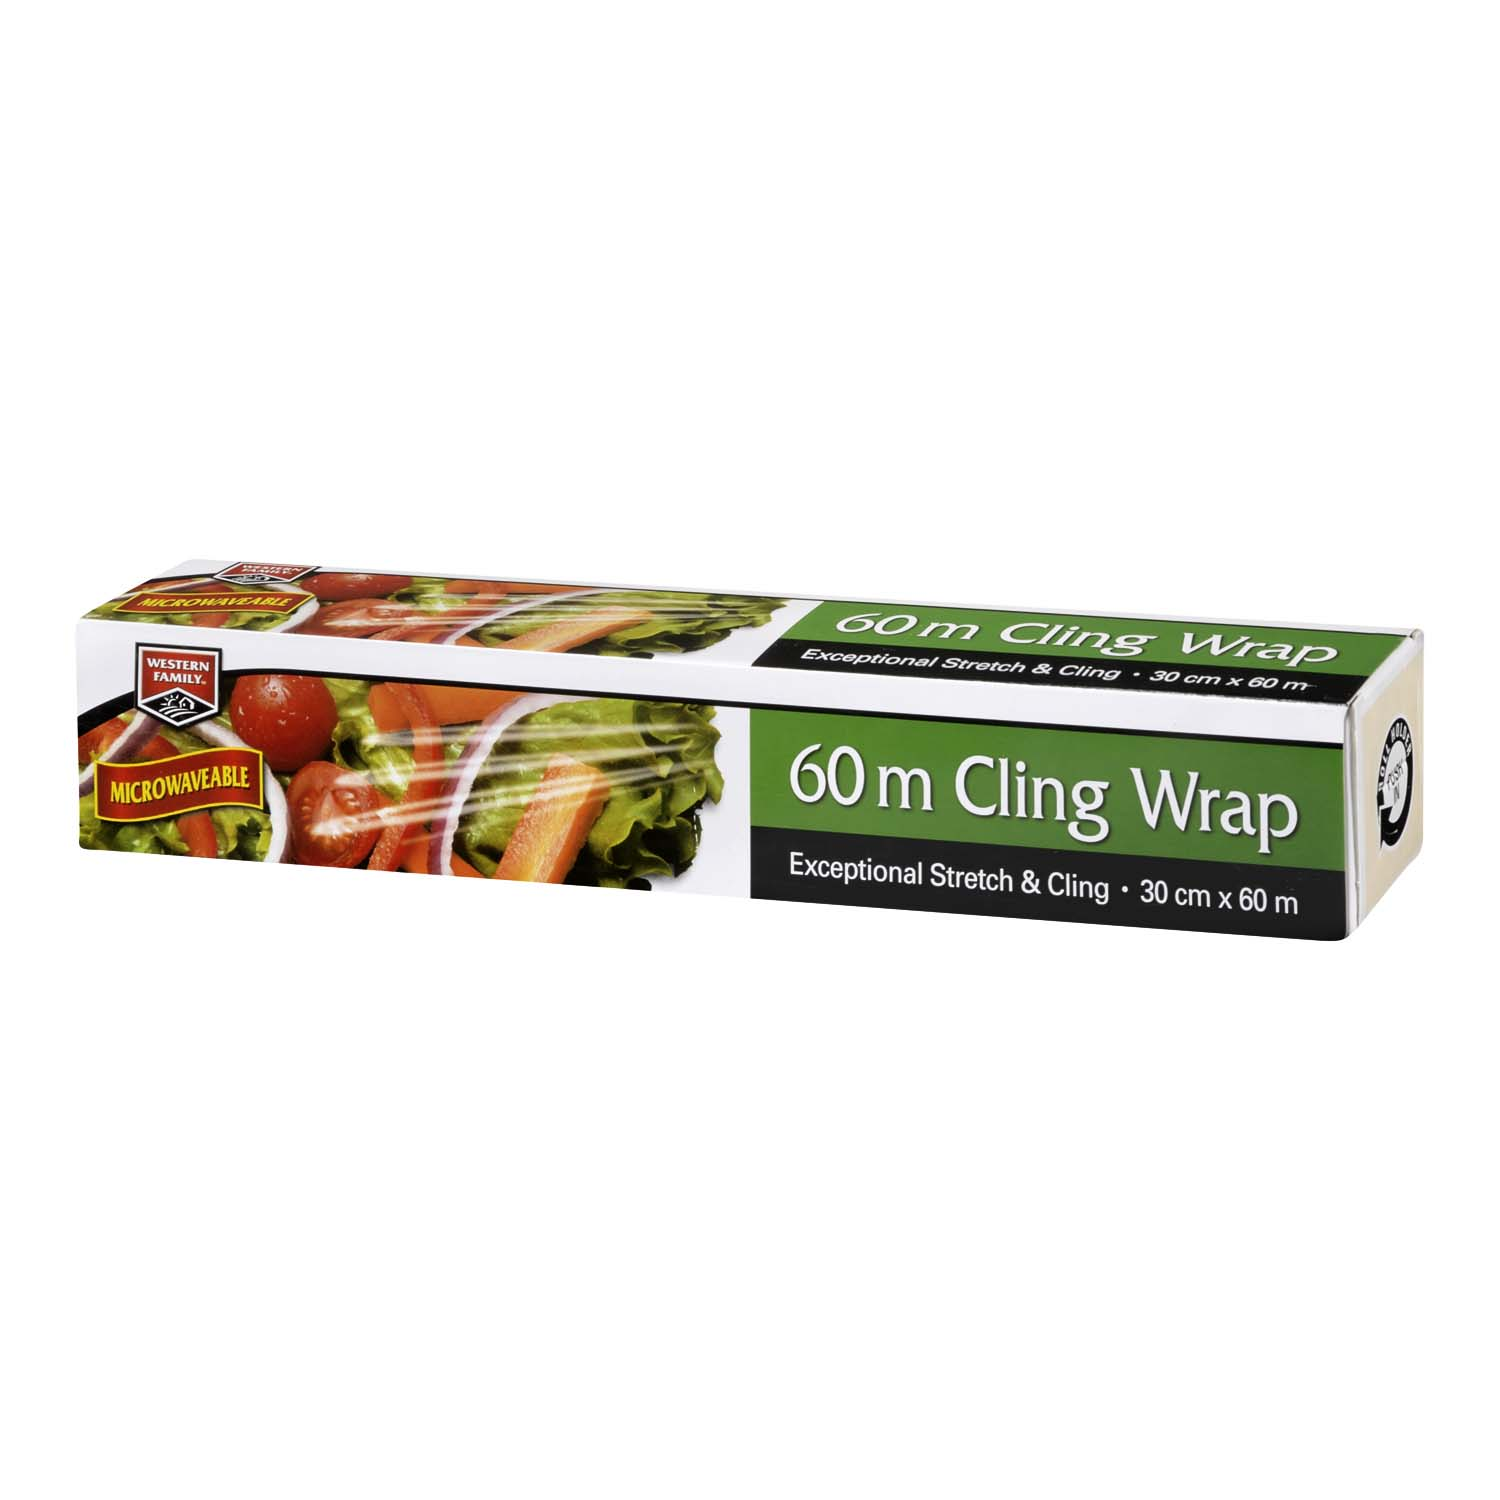 WESTERN FAMILY CLING WRAP 60M | Stong's Market